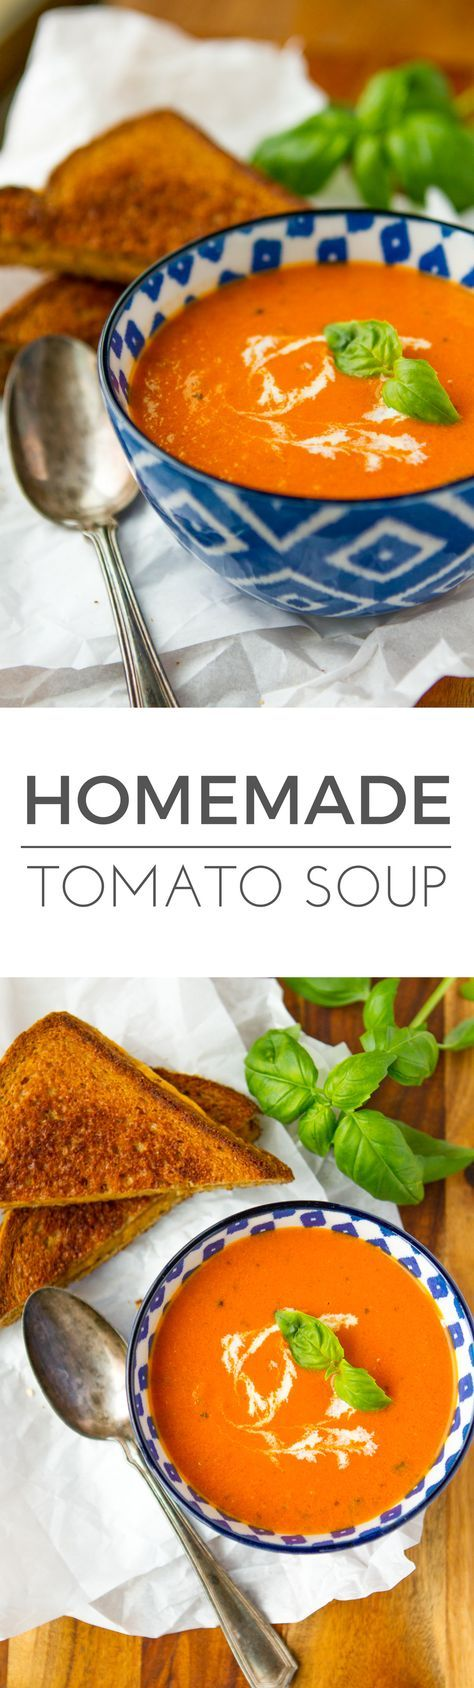 Homemade Tomato Soup -- this creamy tomato basil soup recipe is a total copycat of my favorite soup at First Watch! Perfect paired with a hot and fresh classic grilled cheese sandwich… | via @unsophisticook on unsophisticook.com